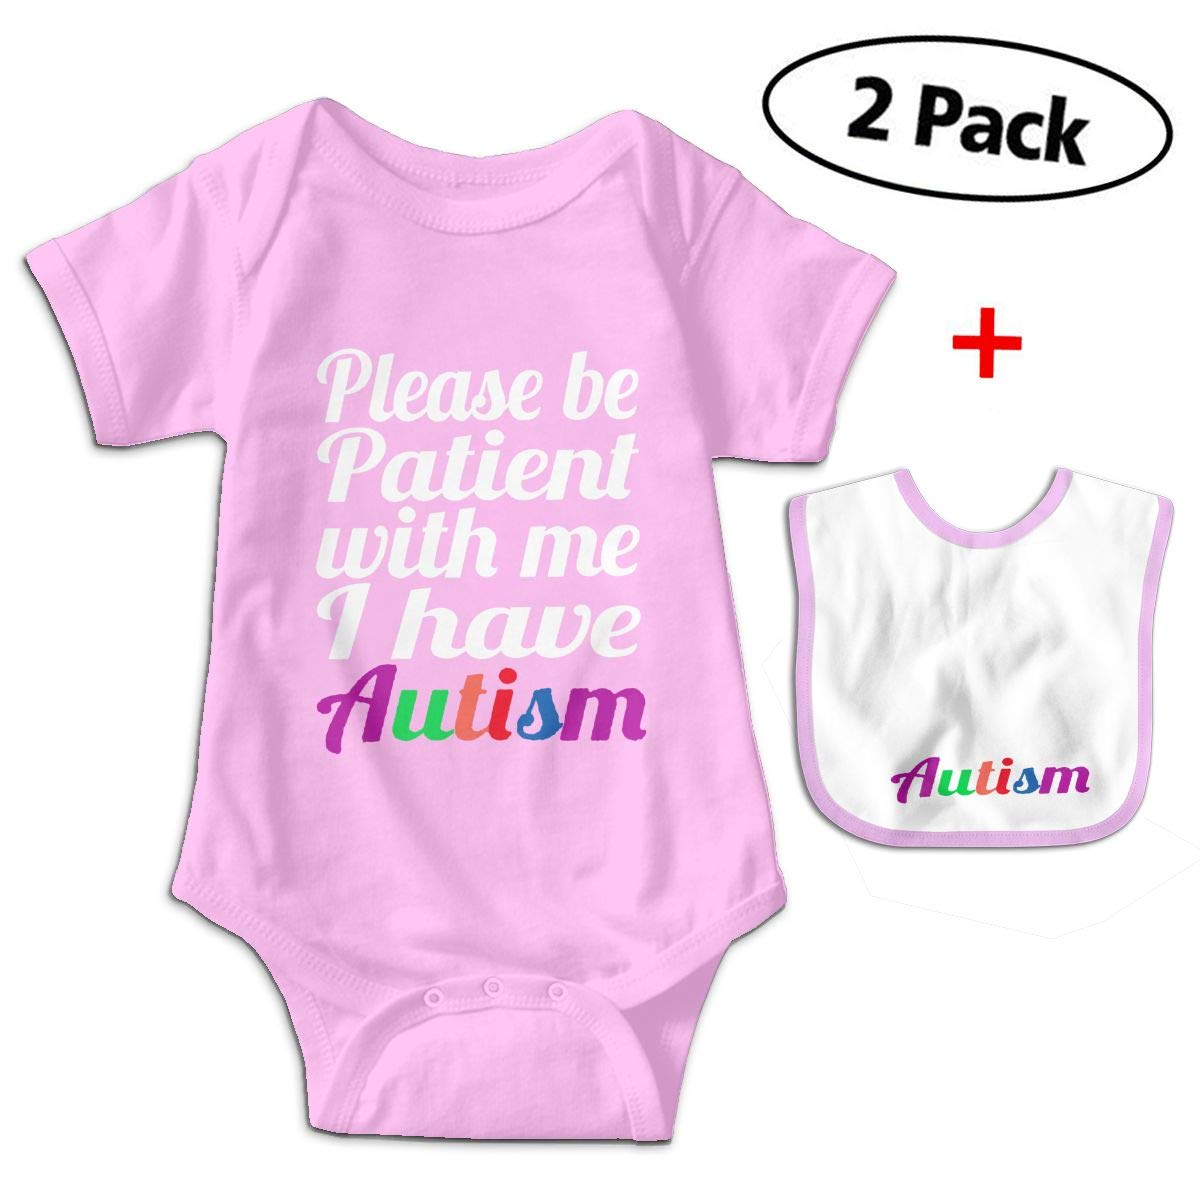 KAYERDELLE Be Patient with Me I Have Autism Babys Kids Short Sleeve Jumpsuit Outfits for 3-24 Months and Baby Bib